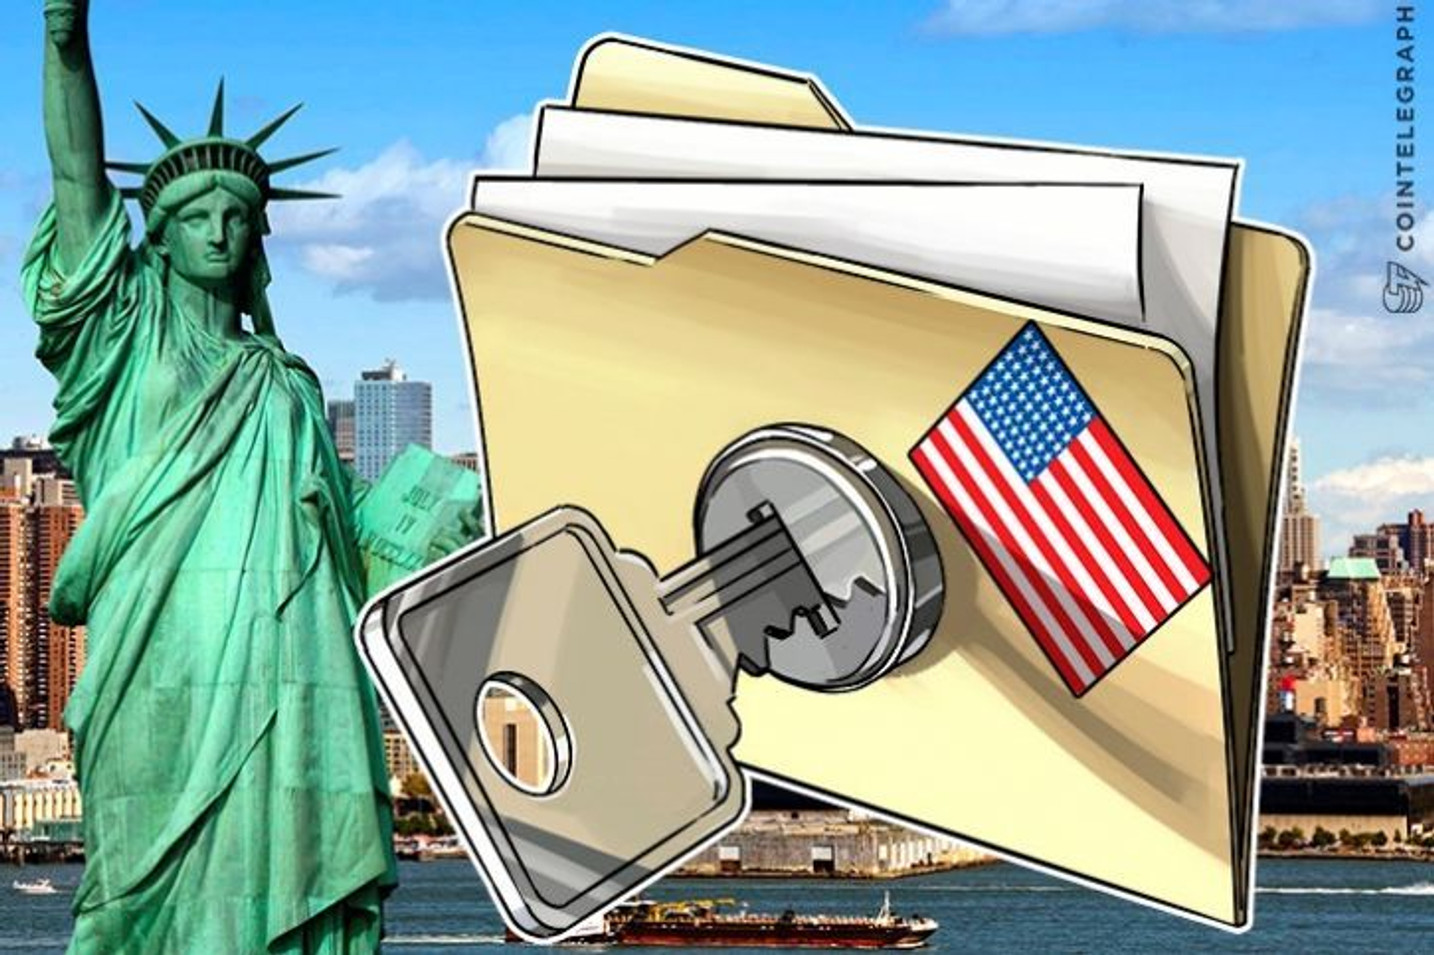 US Treasury Department Investigates Illegal Uses of Bitcoin